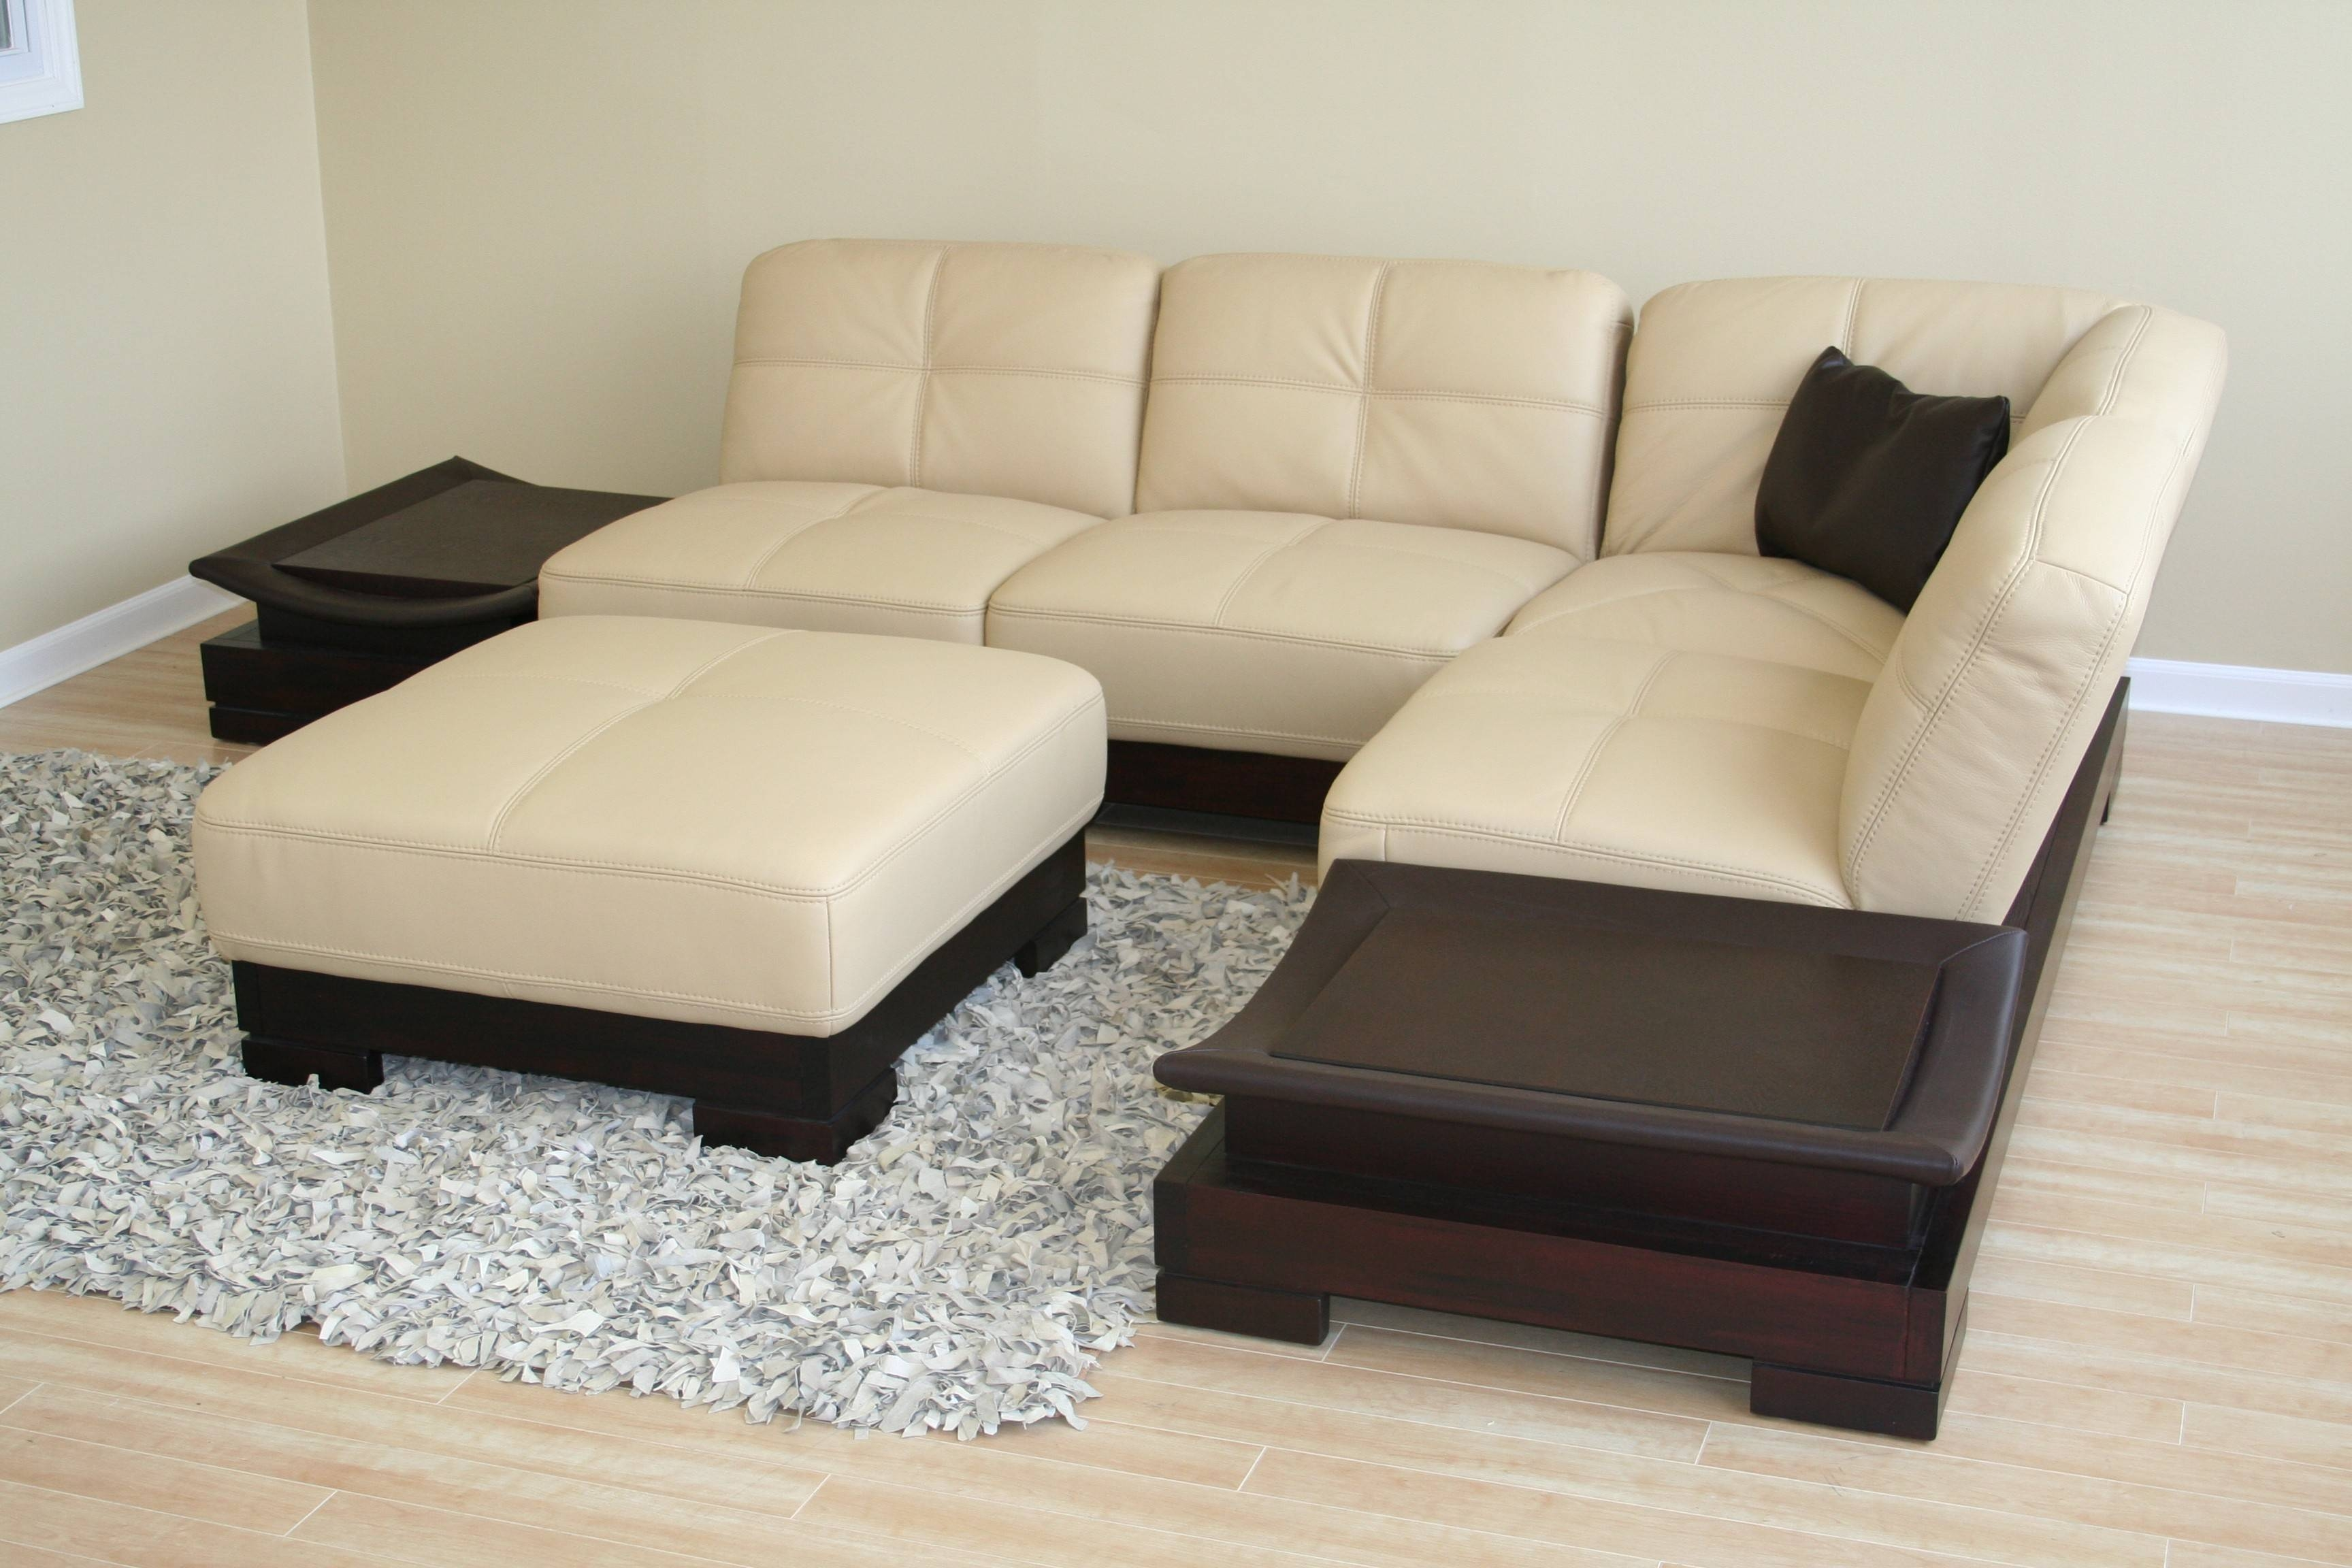 Small Sectional Sofa. Charming Small Sectional Sofa For Modern pertaining to Small Scale Sectional Sofas (Image 15 of 15)